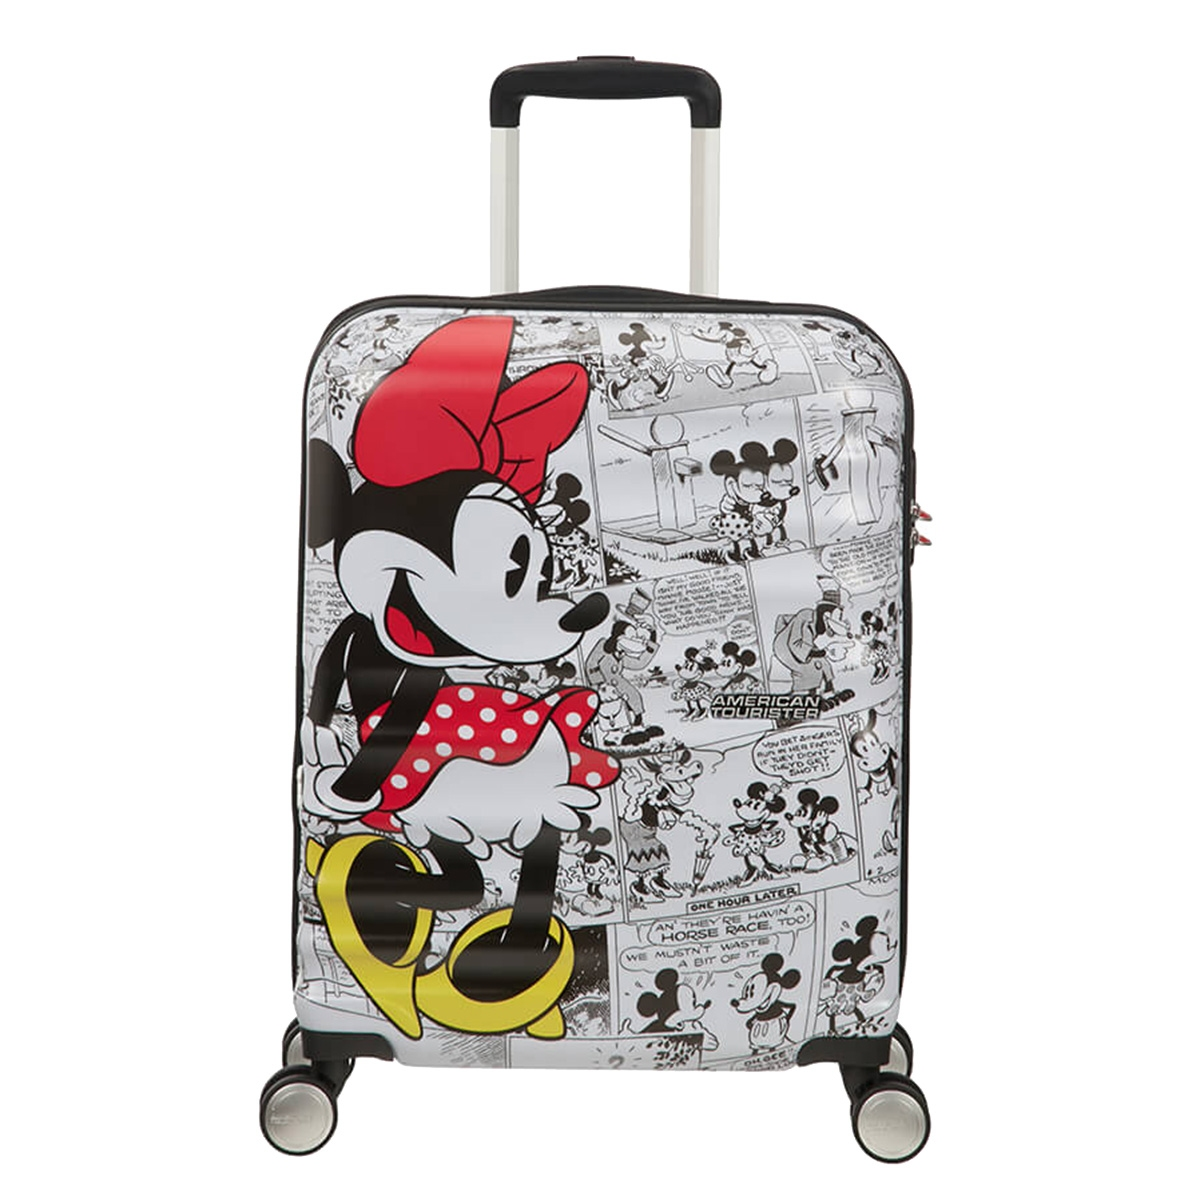 97d357ab8c Βαλίτσα Καμπίνας Σκληρή American Tourister Wavebreaker Disney Minnie Comics Spinner  55cm 85667-7484